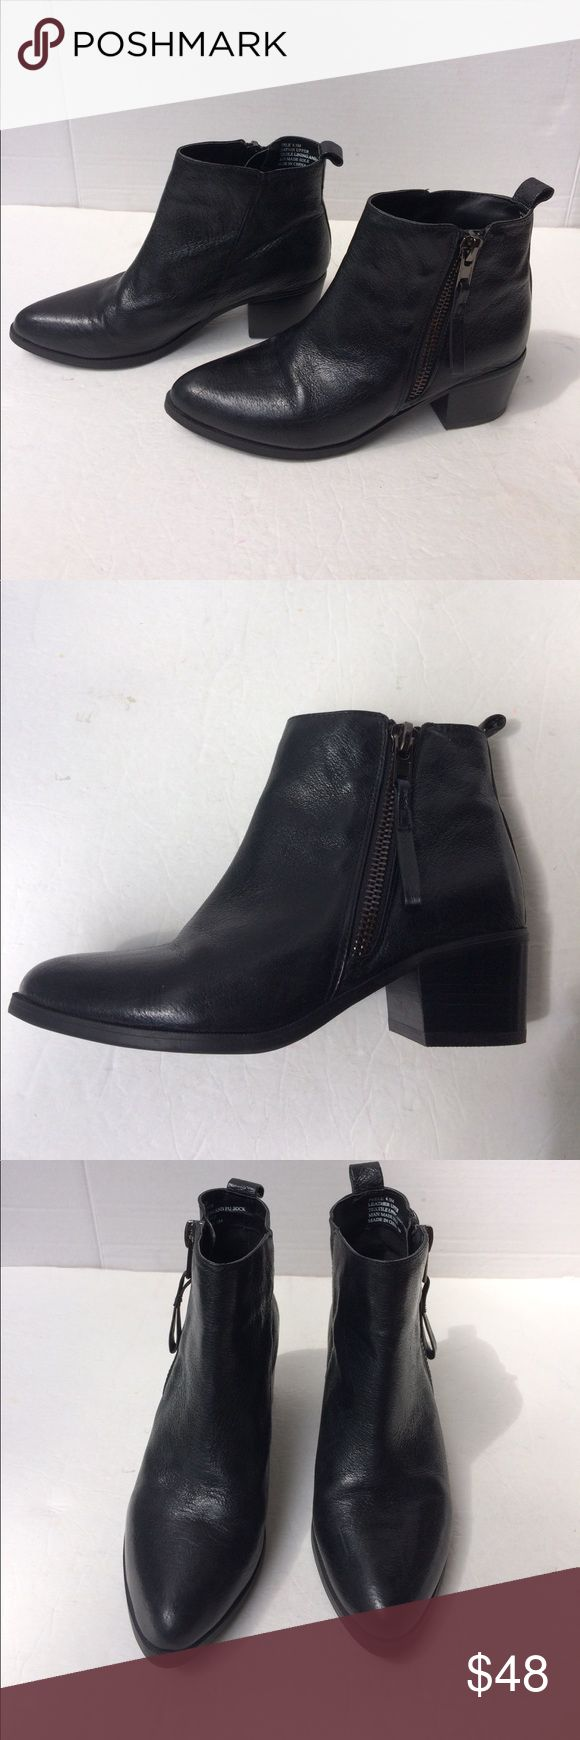 "Steve Madden Women's Peele Leather Ankle Boots This is a new pair of Steve Madden leather side zip ankle boots. The have textile lining and man made soles with a 2"" Cuban heel and pull tab. Total height is 6"". New without box. 6.5M Steve Madden Shoes Ankle Boots & Booties"